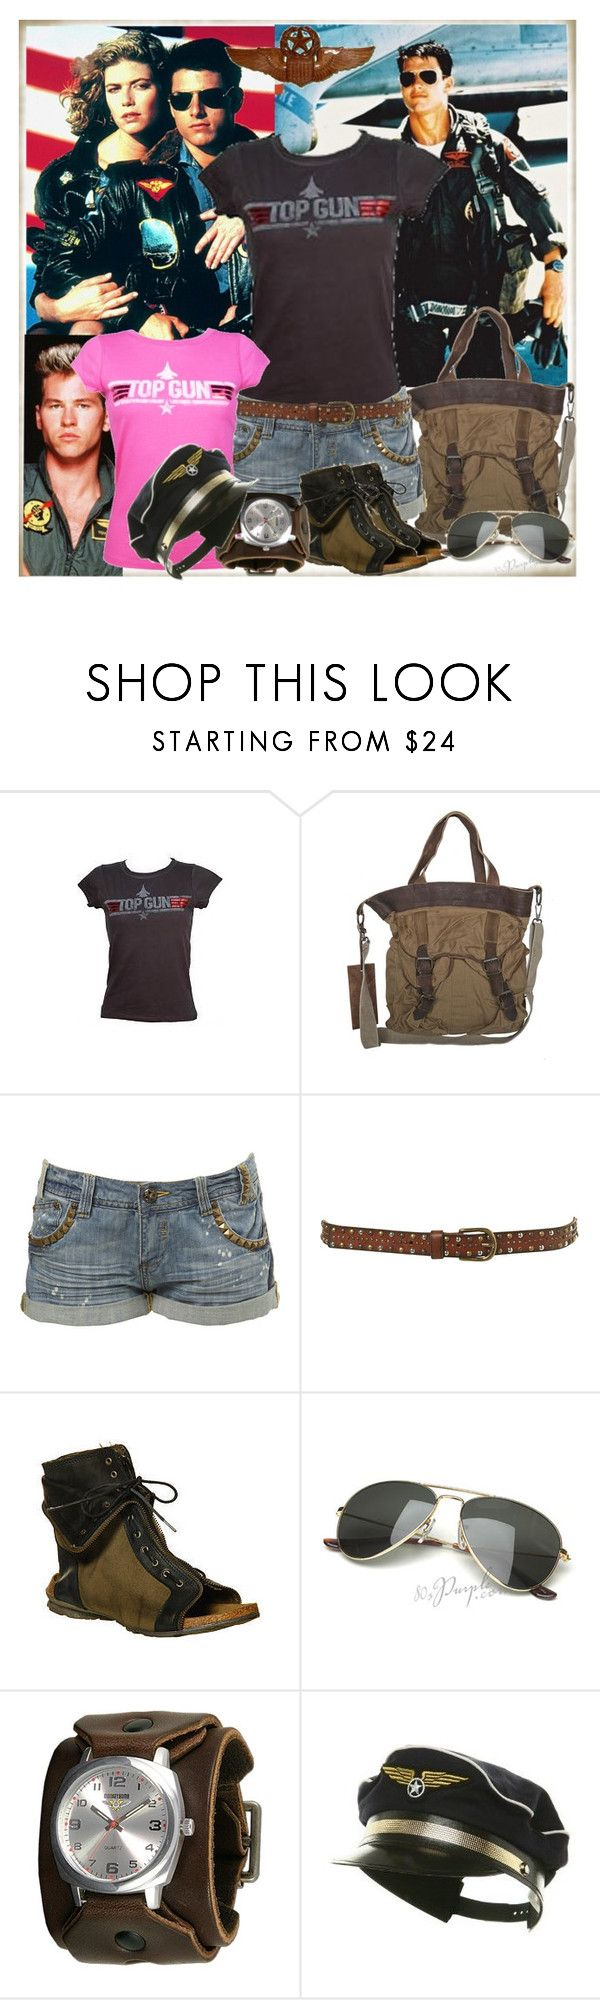 """""""top gun"""" by dinemisim ❤ liked on Polyvore featuring Edition, AllSaints, Miss Selfridge, Topshop, Bronx, Vintage Collection, Command and denim shorts"""